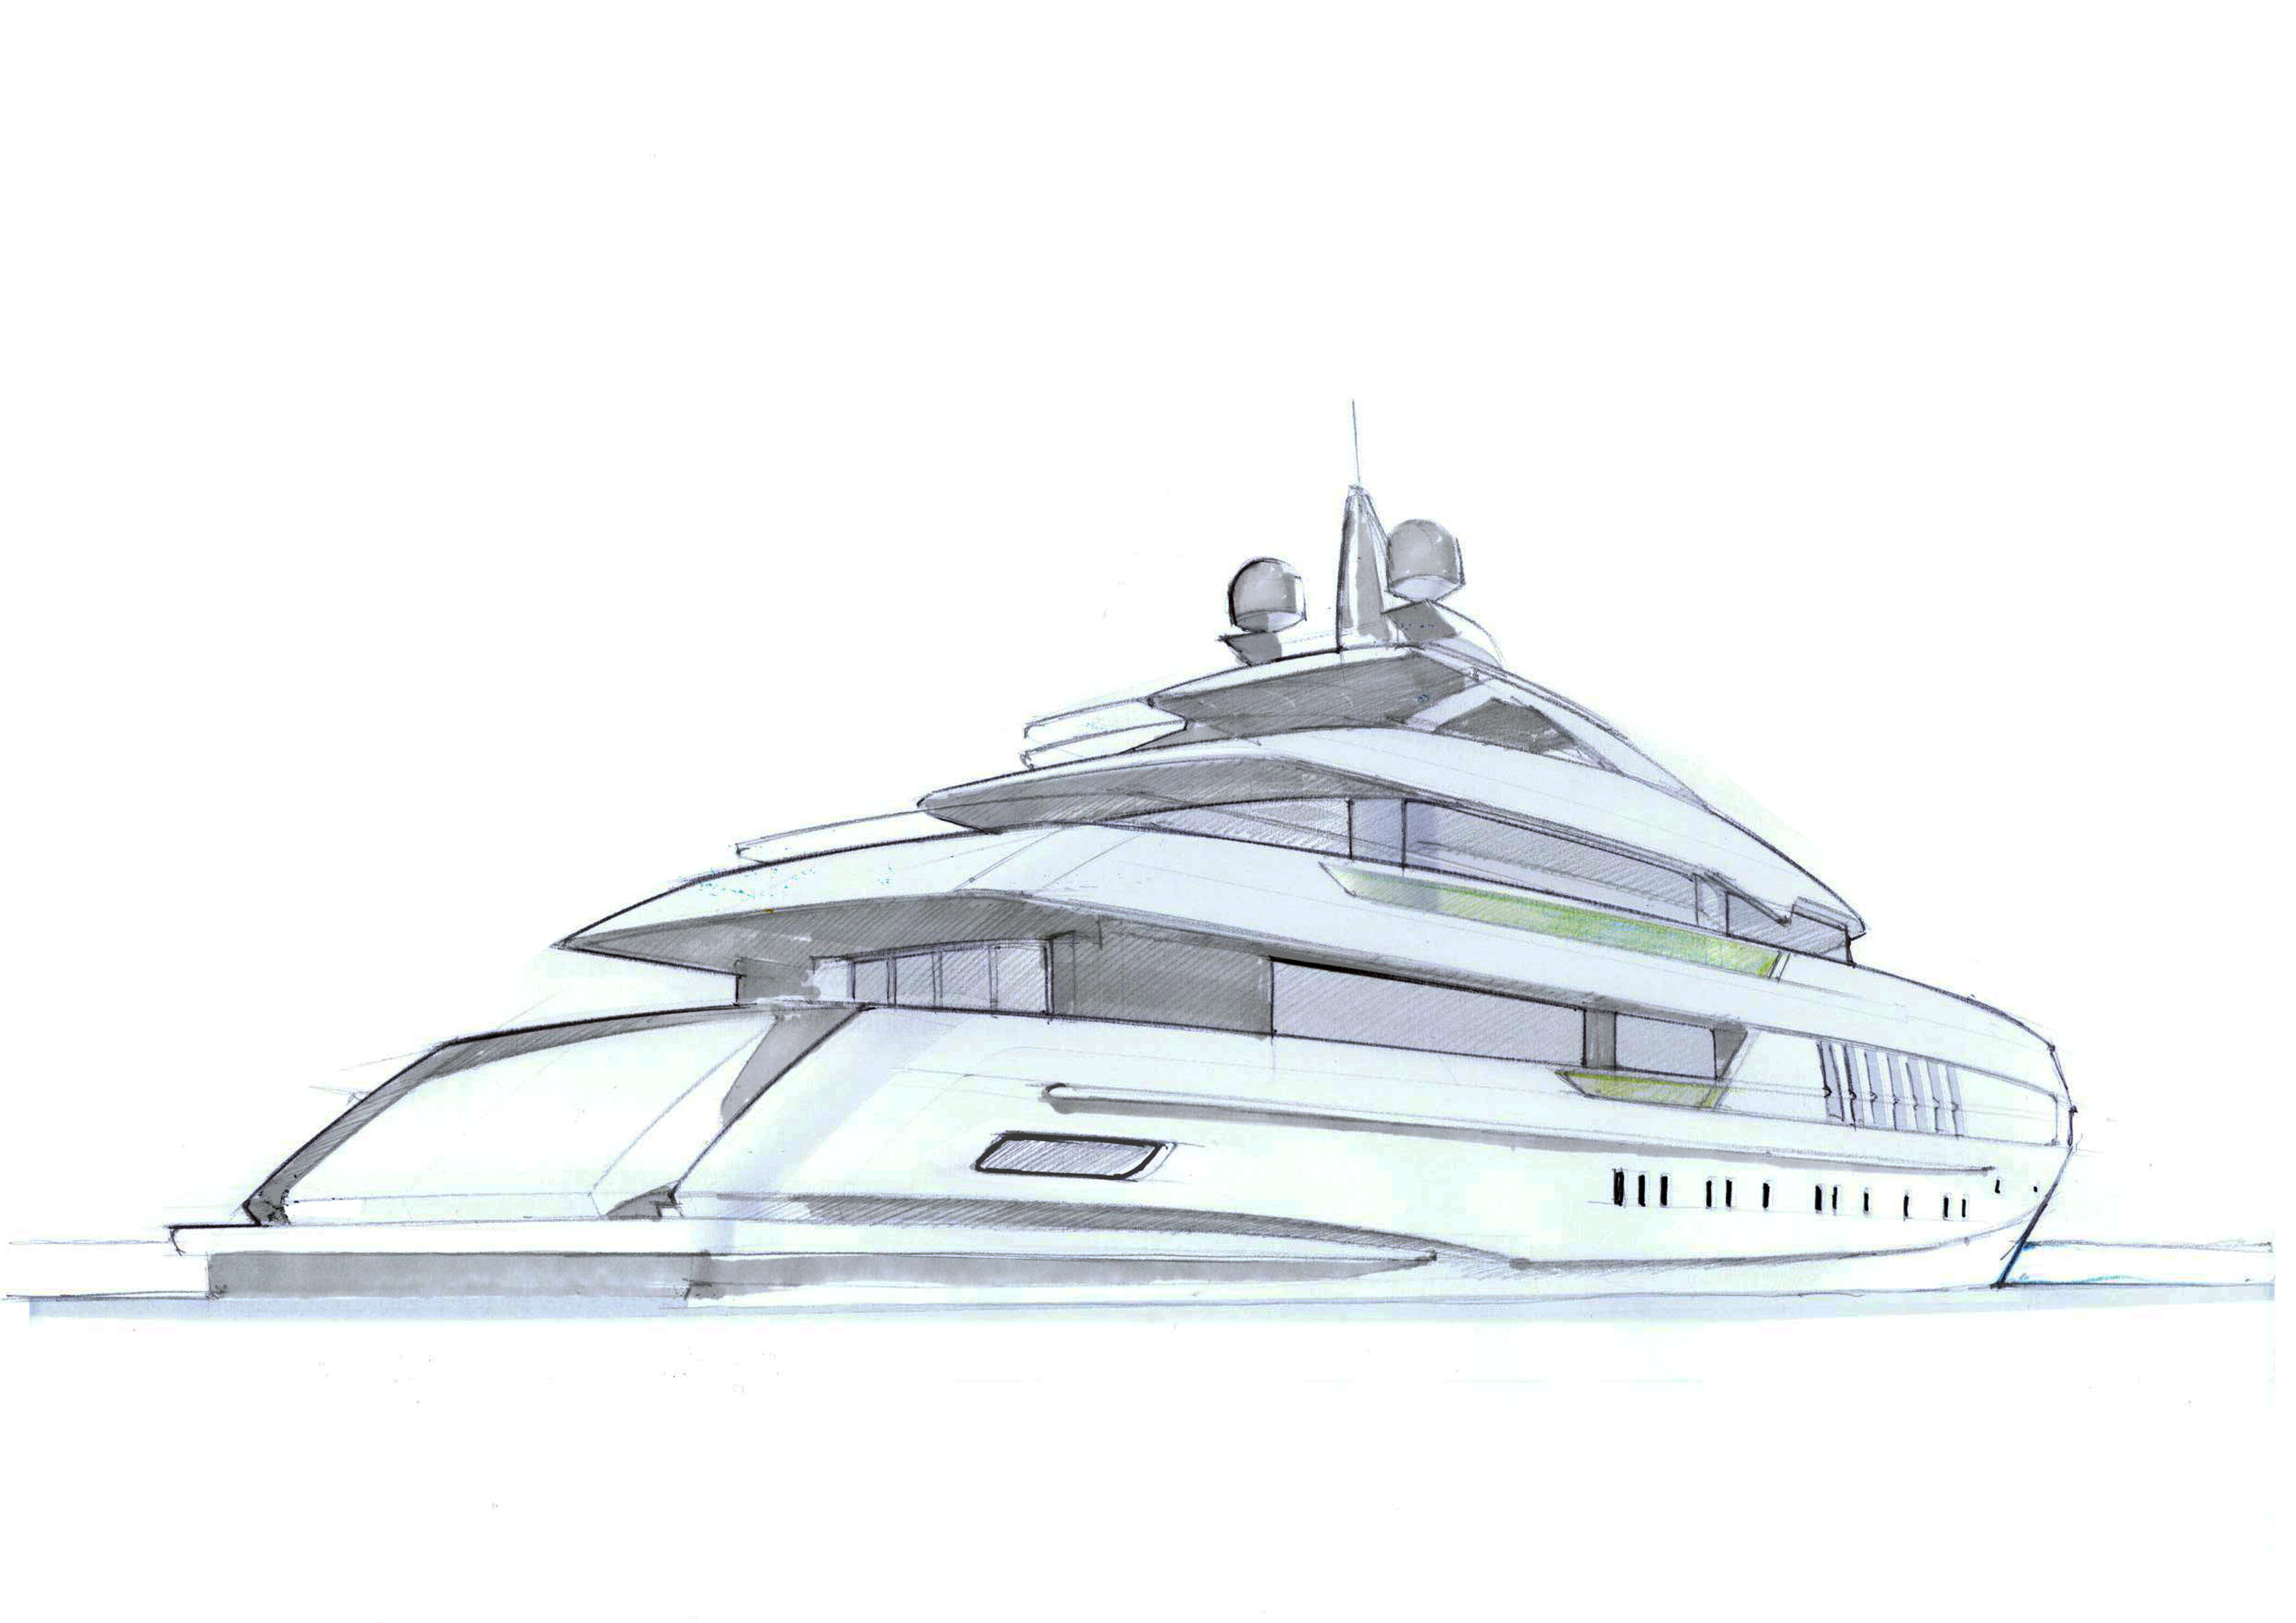 Art Line Yacht Design : Yacht line drawing